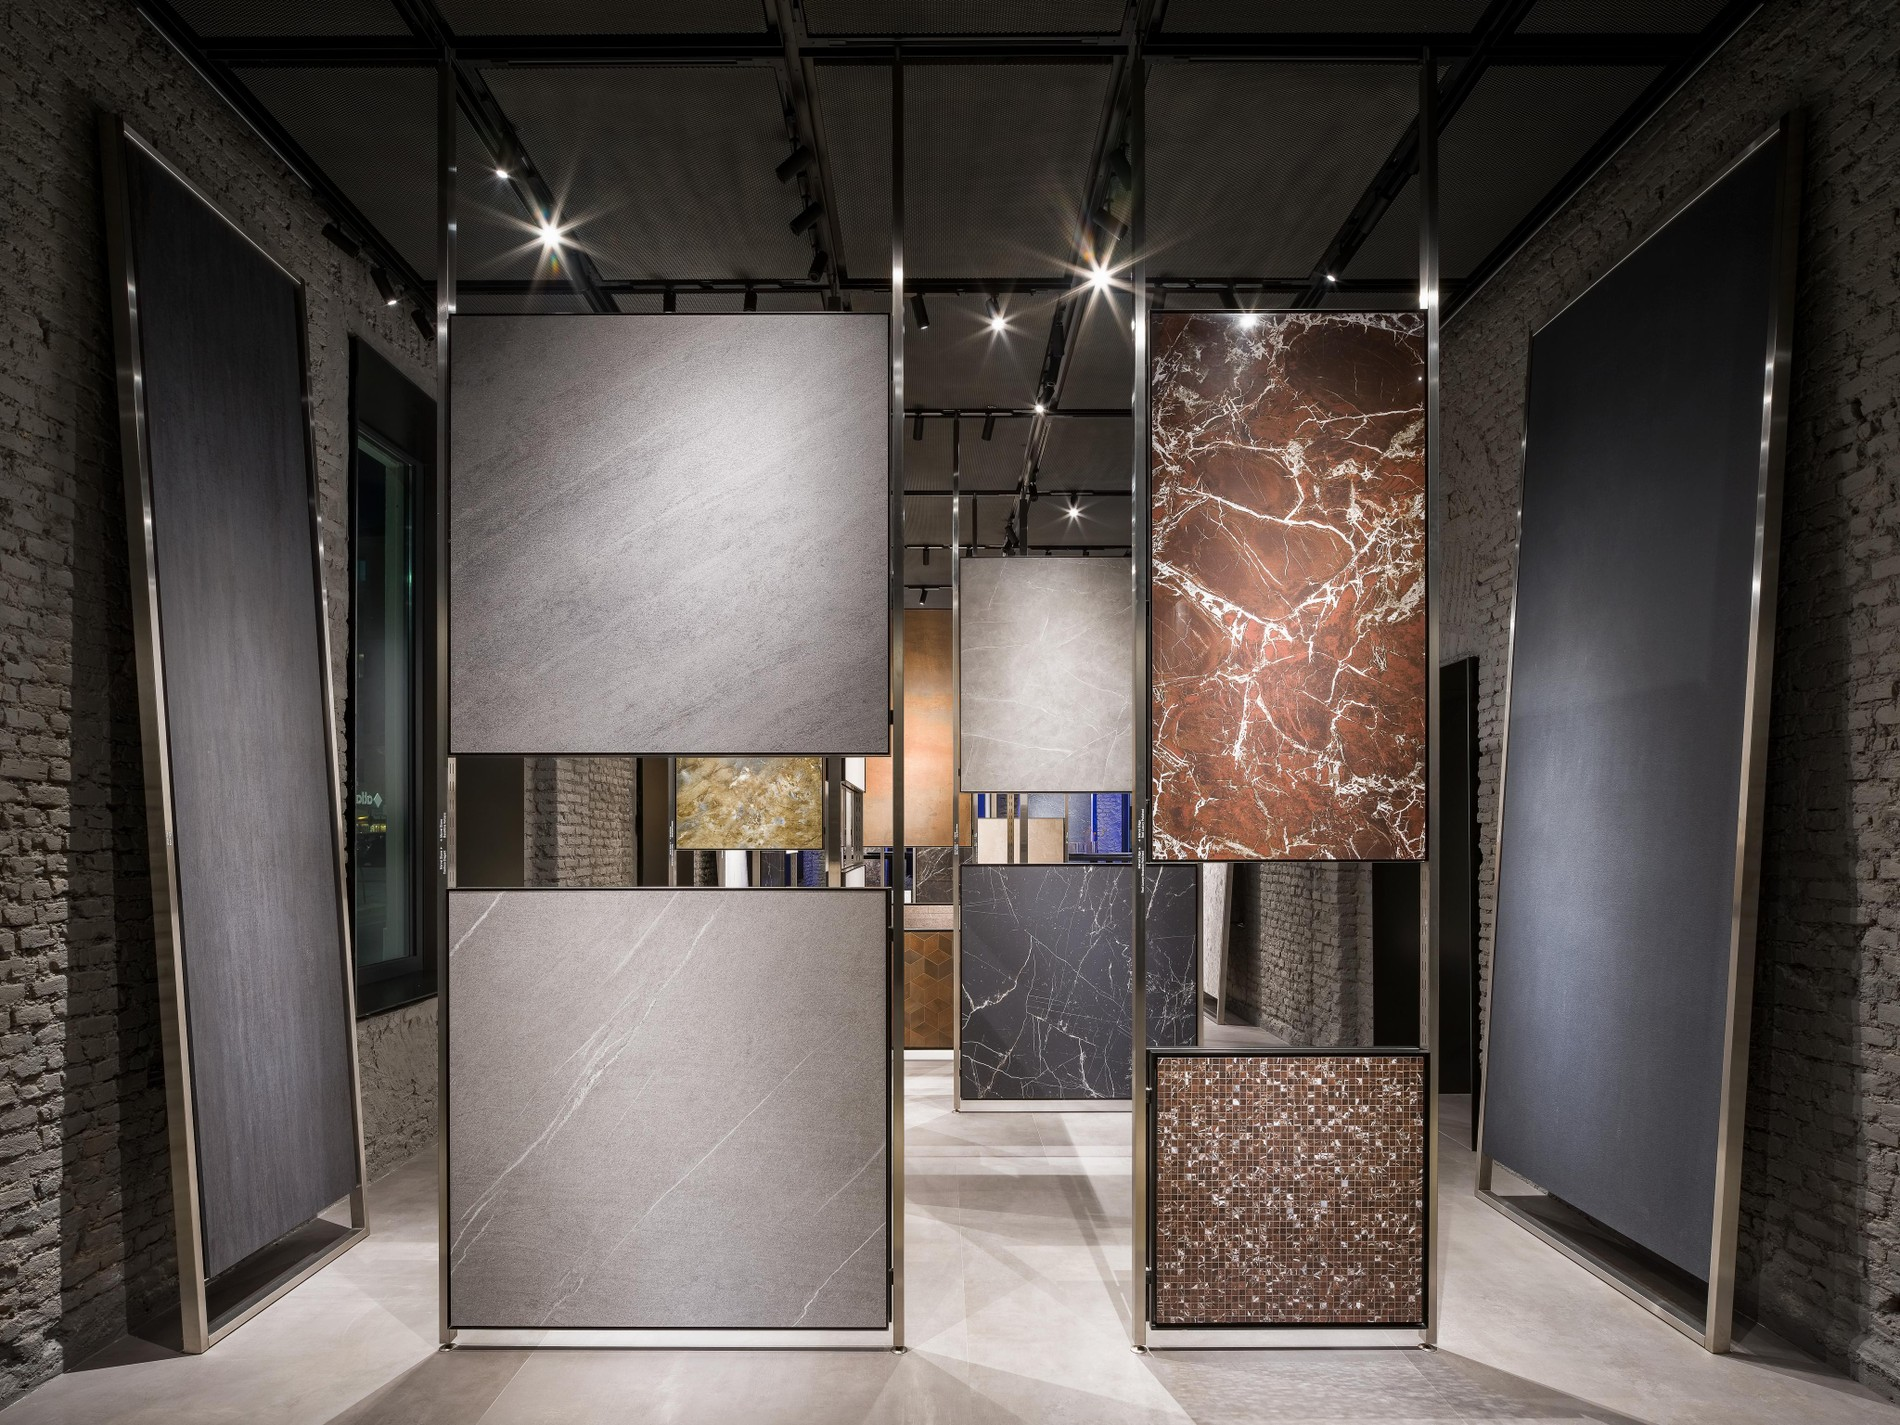 Altas Concorde's Milan showroom, in the words of its leading actors